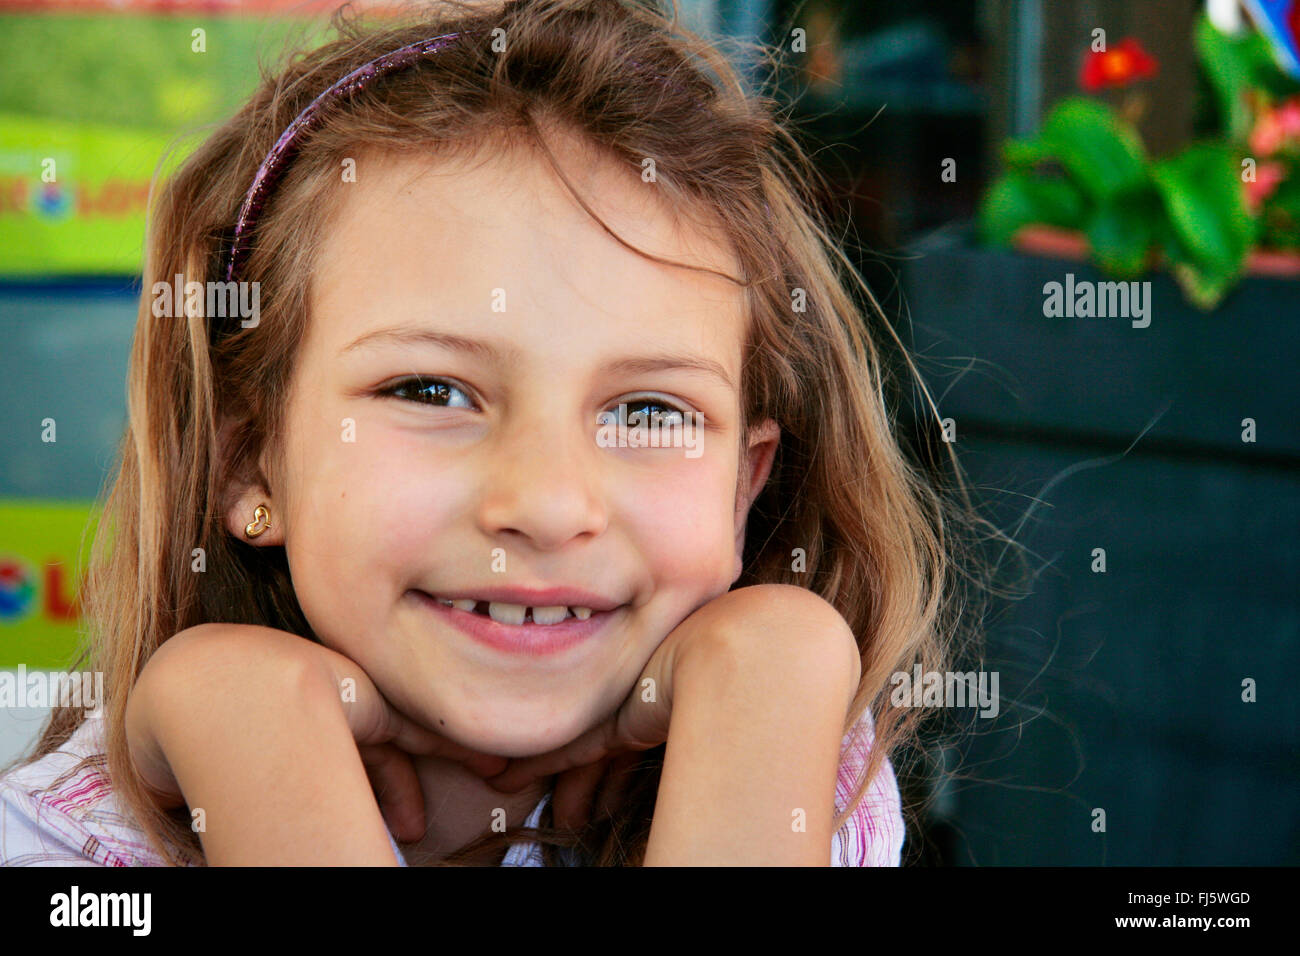 girl in good mood resting head on hands, portrait of a child, Germany - Stock Image